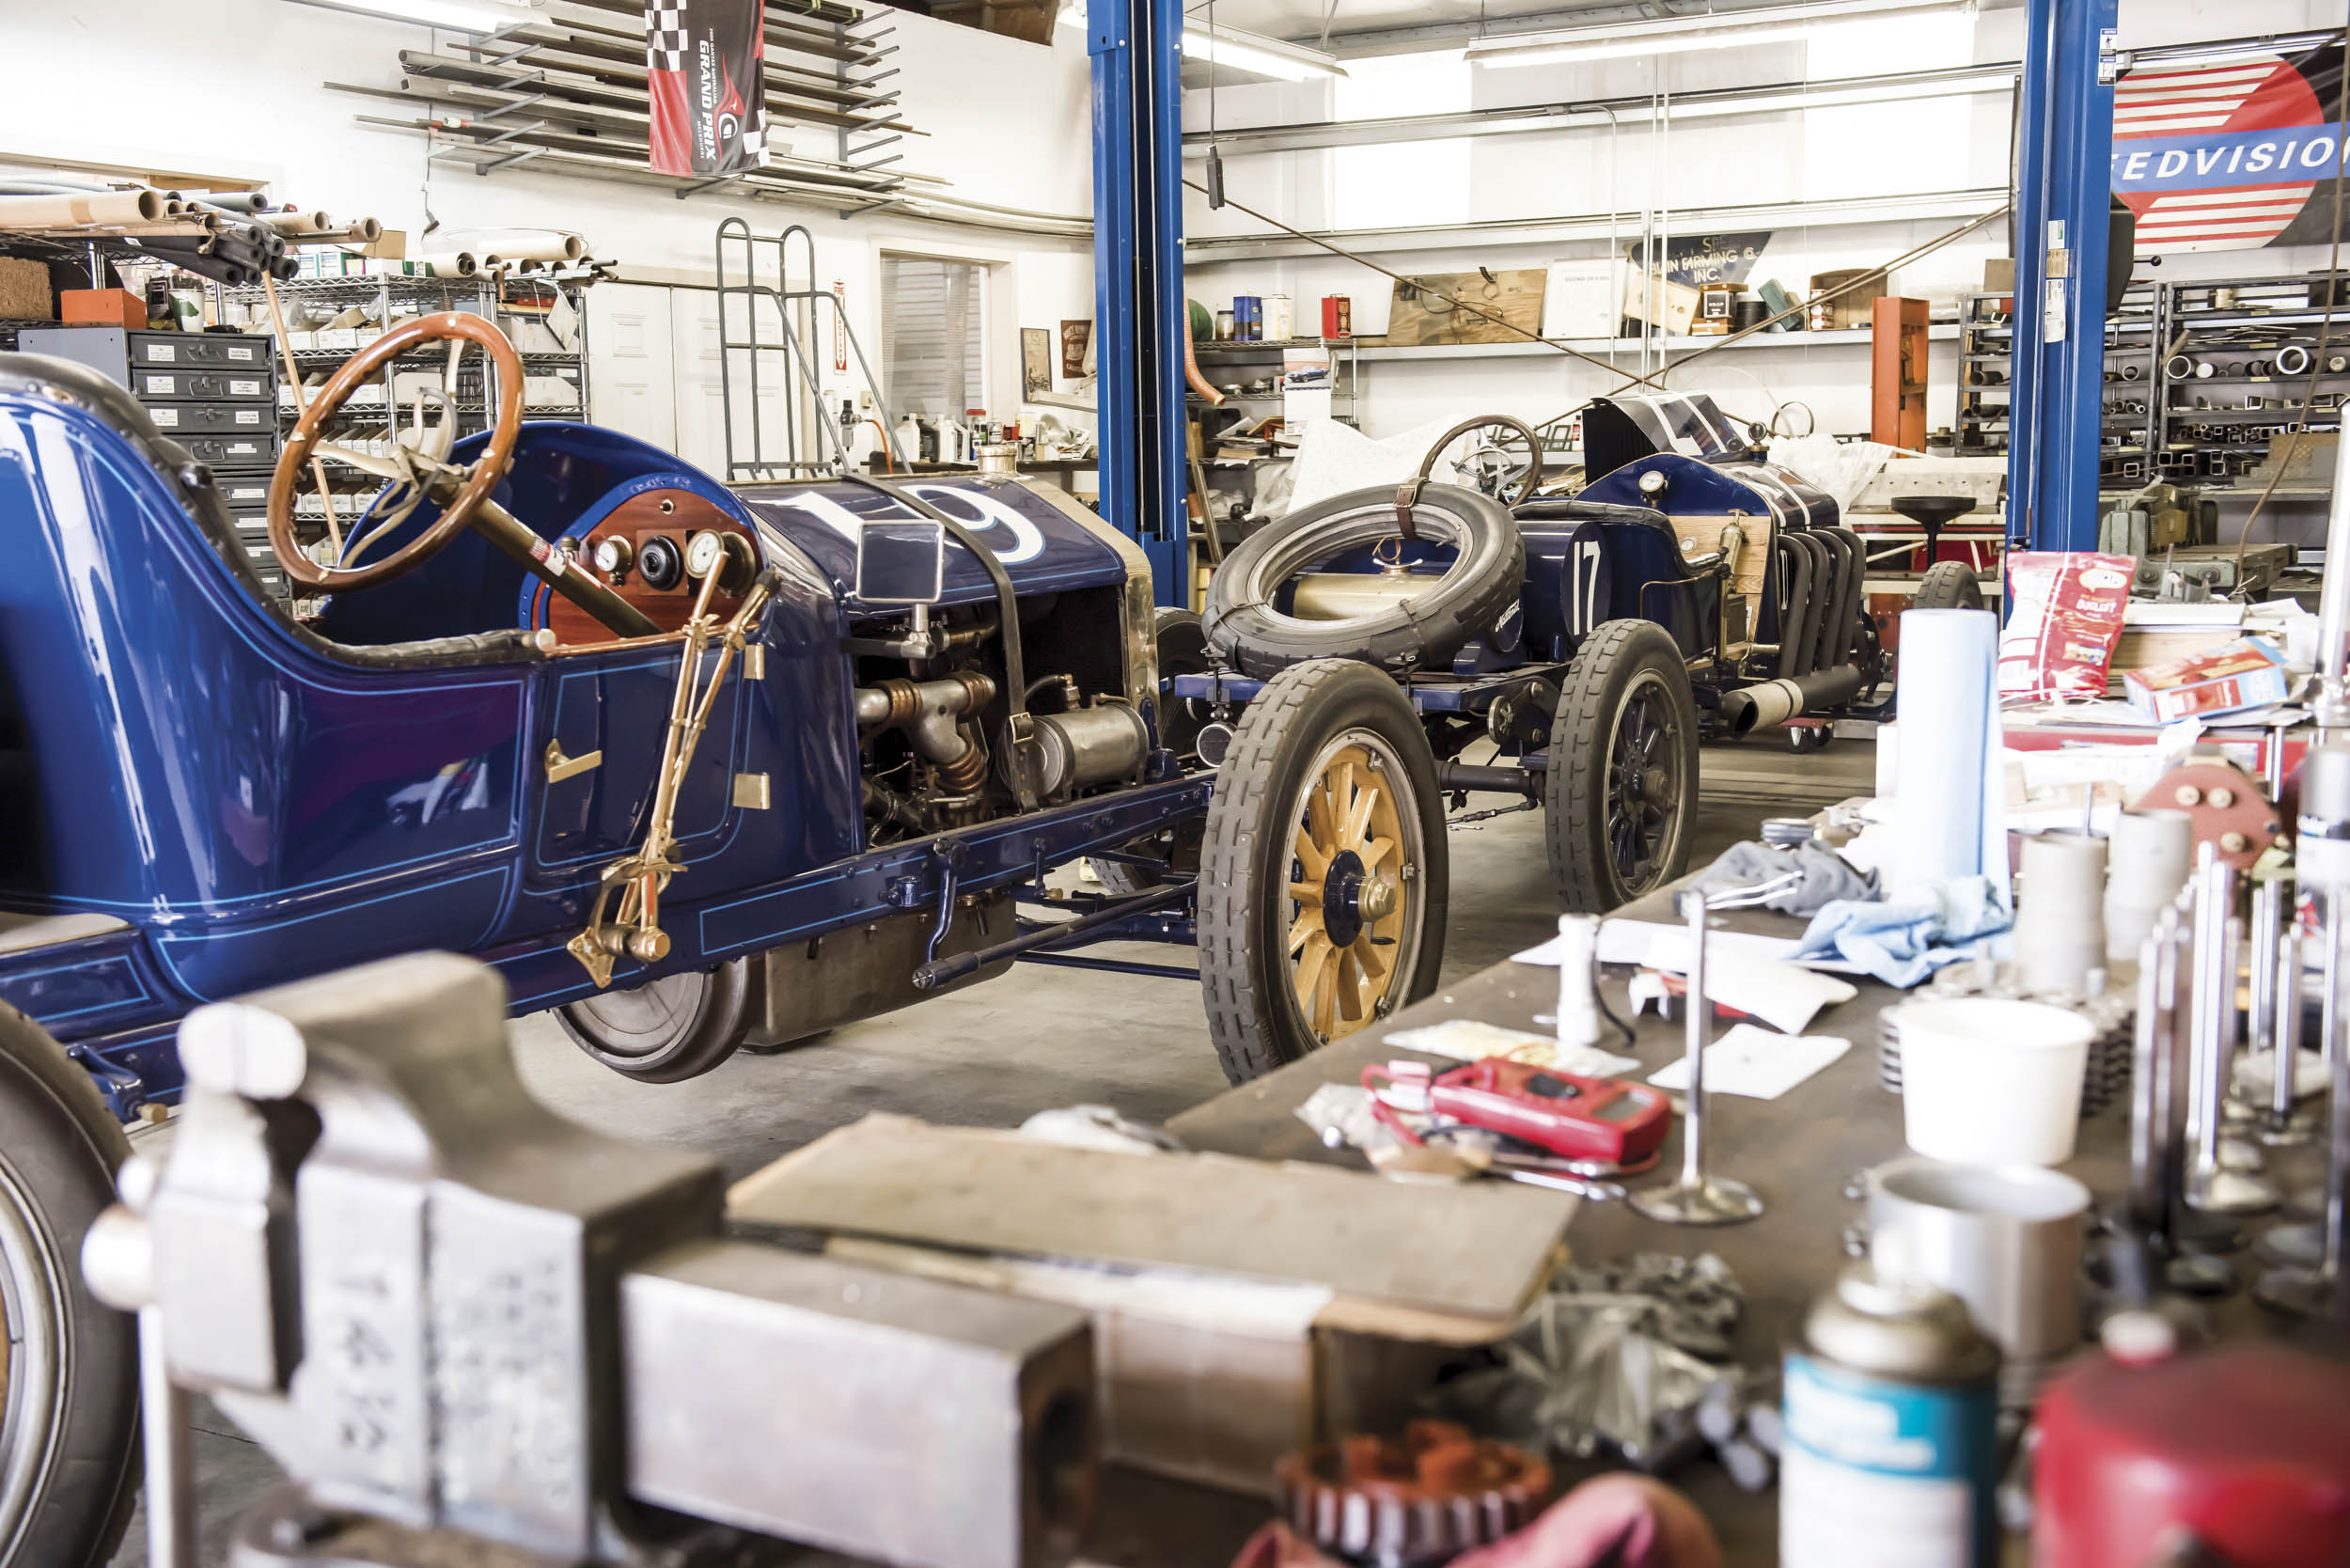 Blain makes a lot of his parts on-site, owing to the fact that NAPA doesn't carry much for cars that are more than 100 years old.